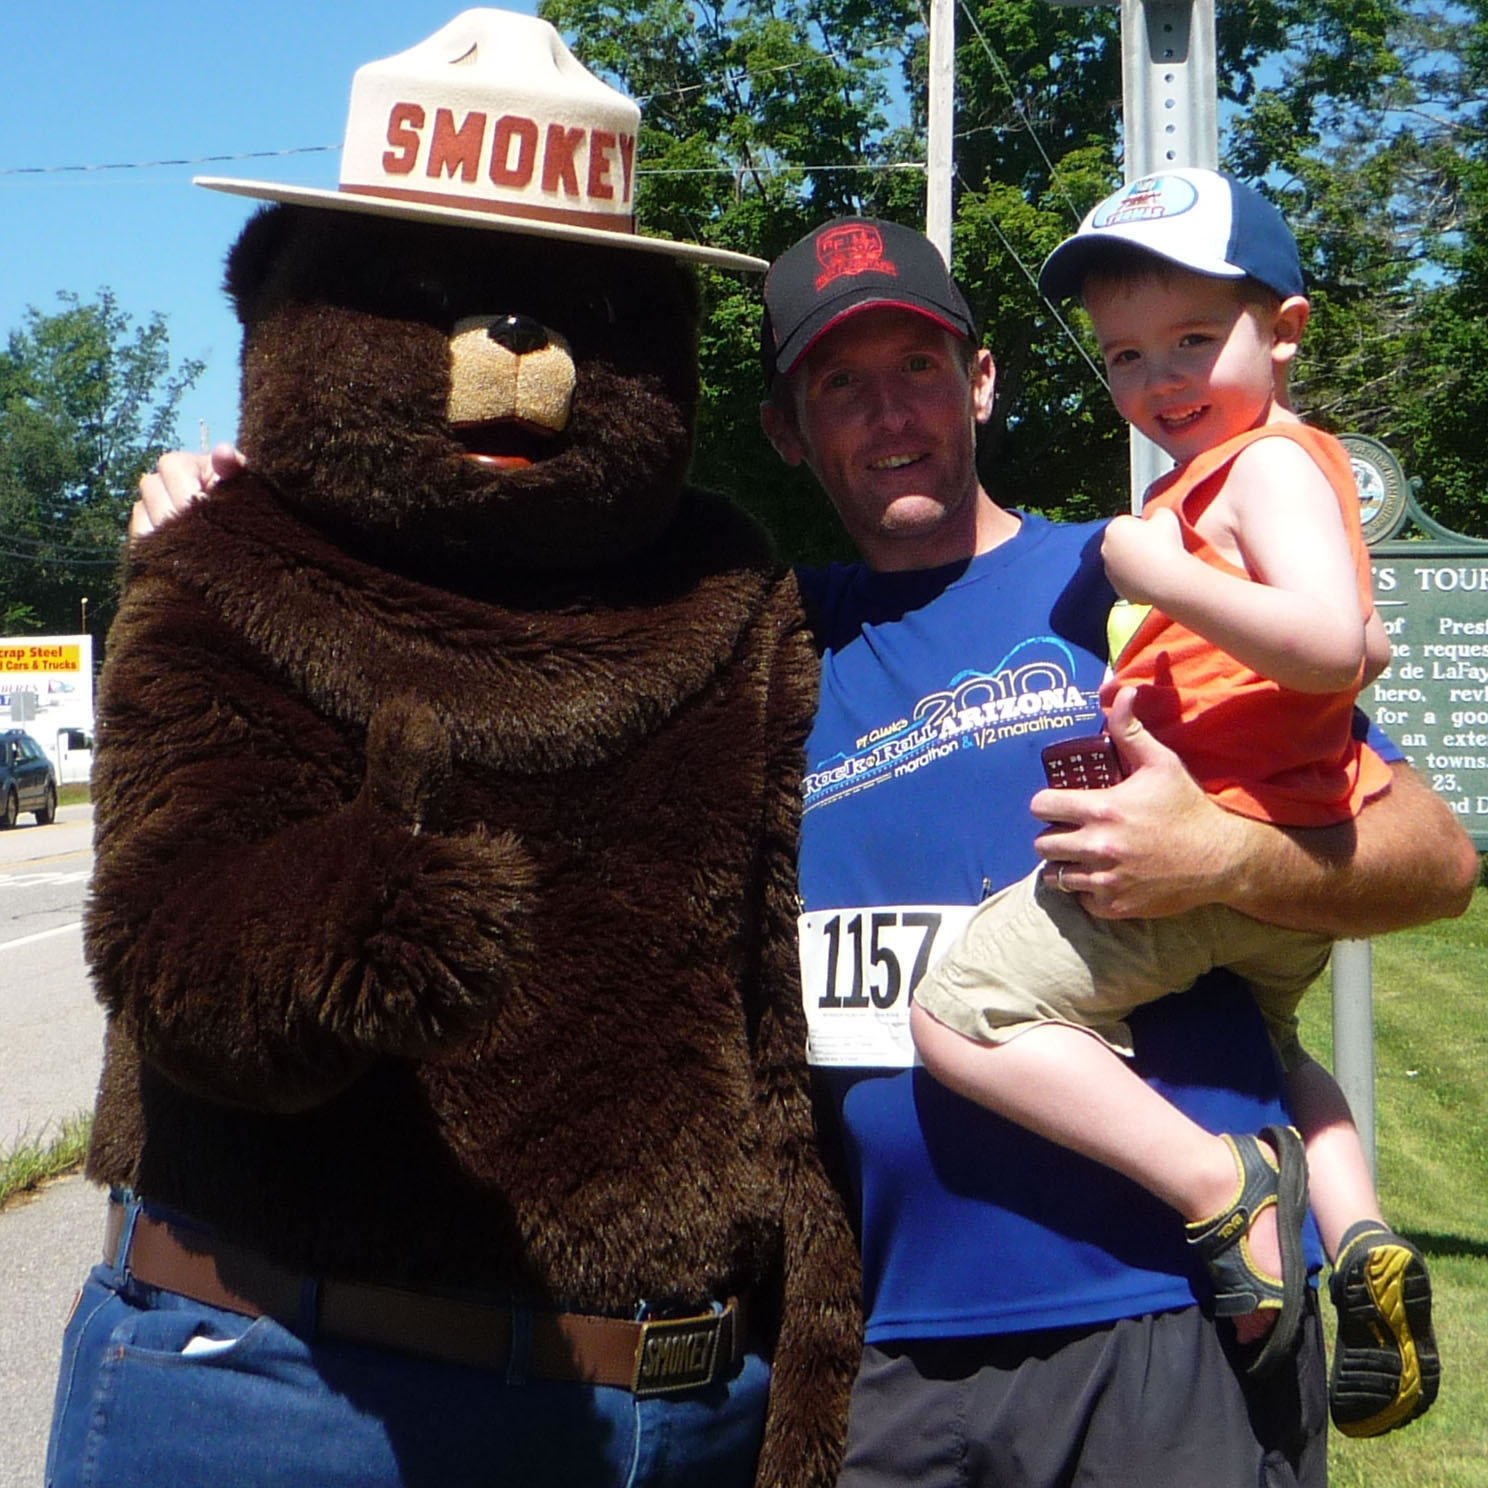 A picture of Ryan Hanavan holding his son in his arms, standing next to Smokey Bear.